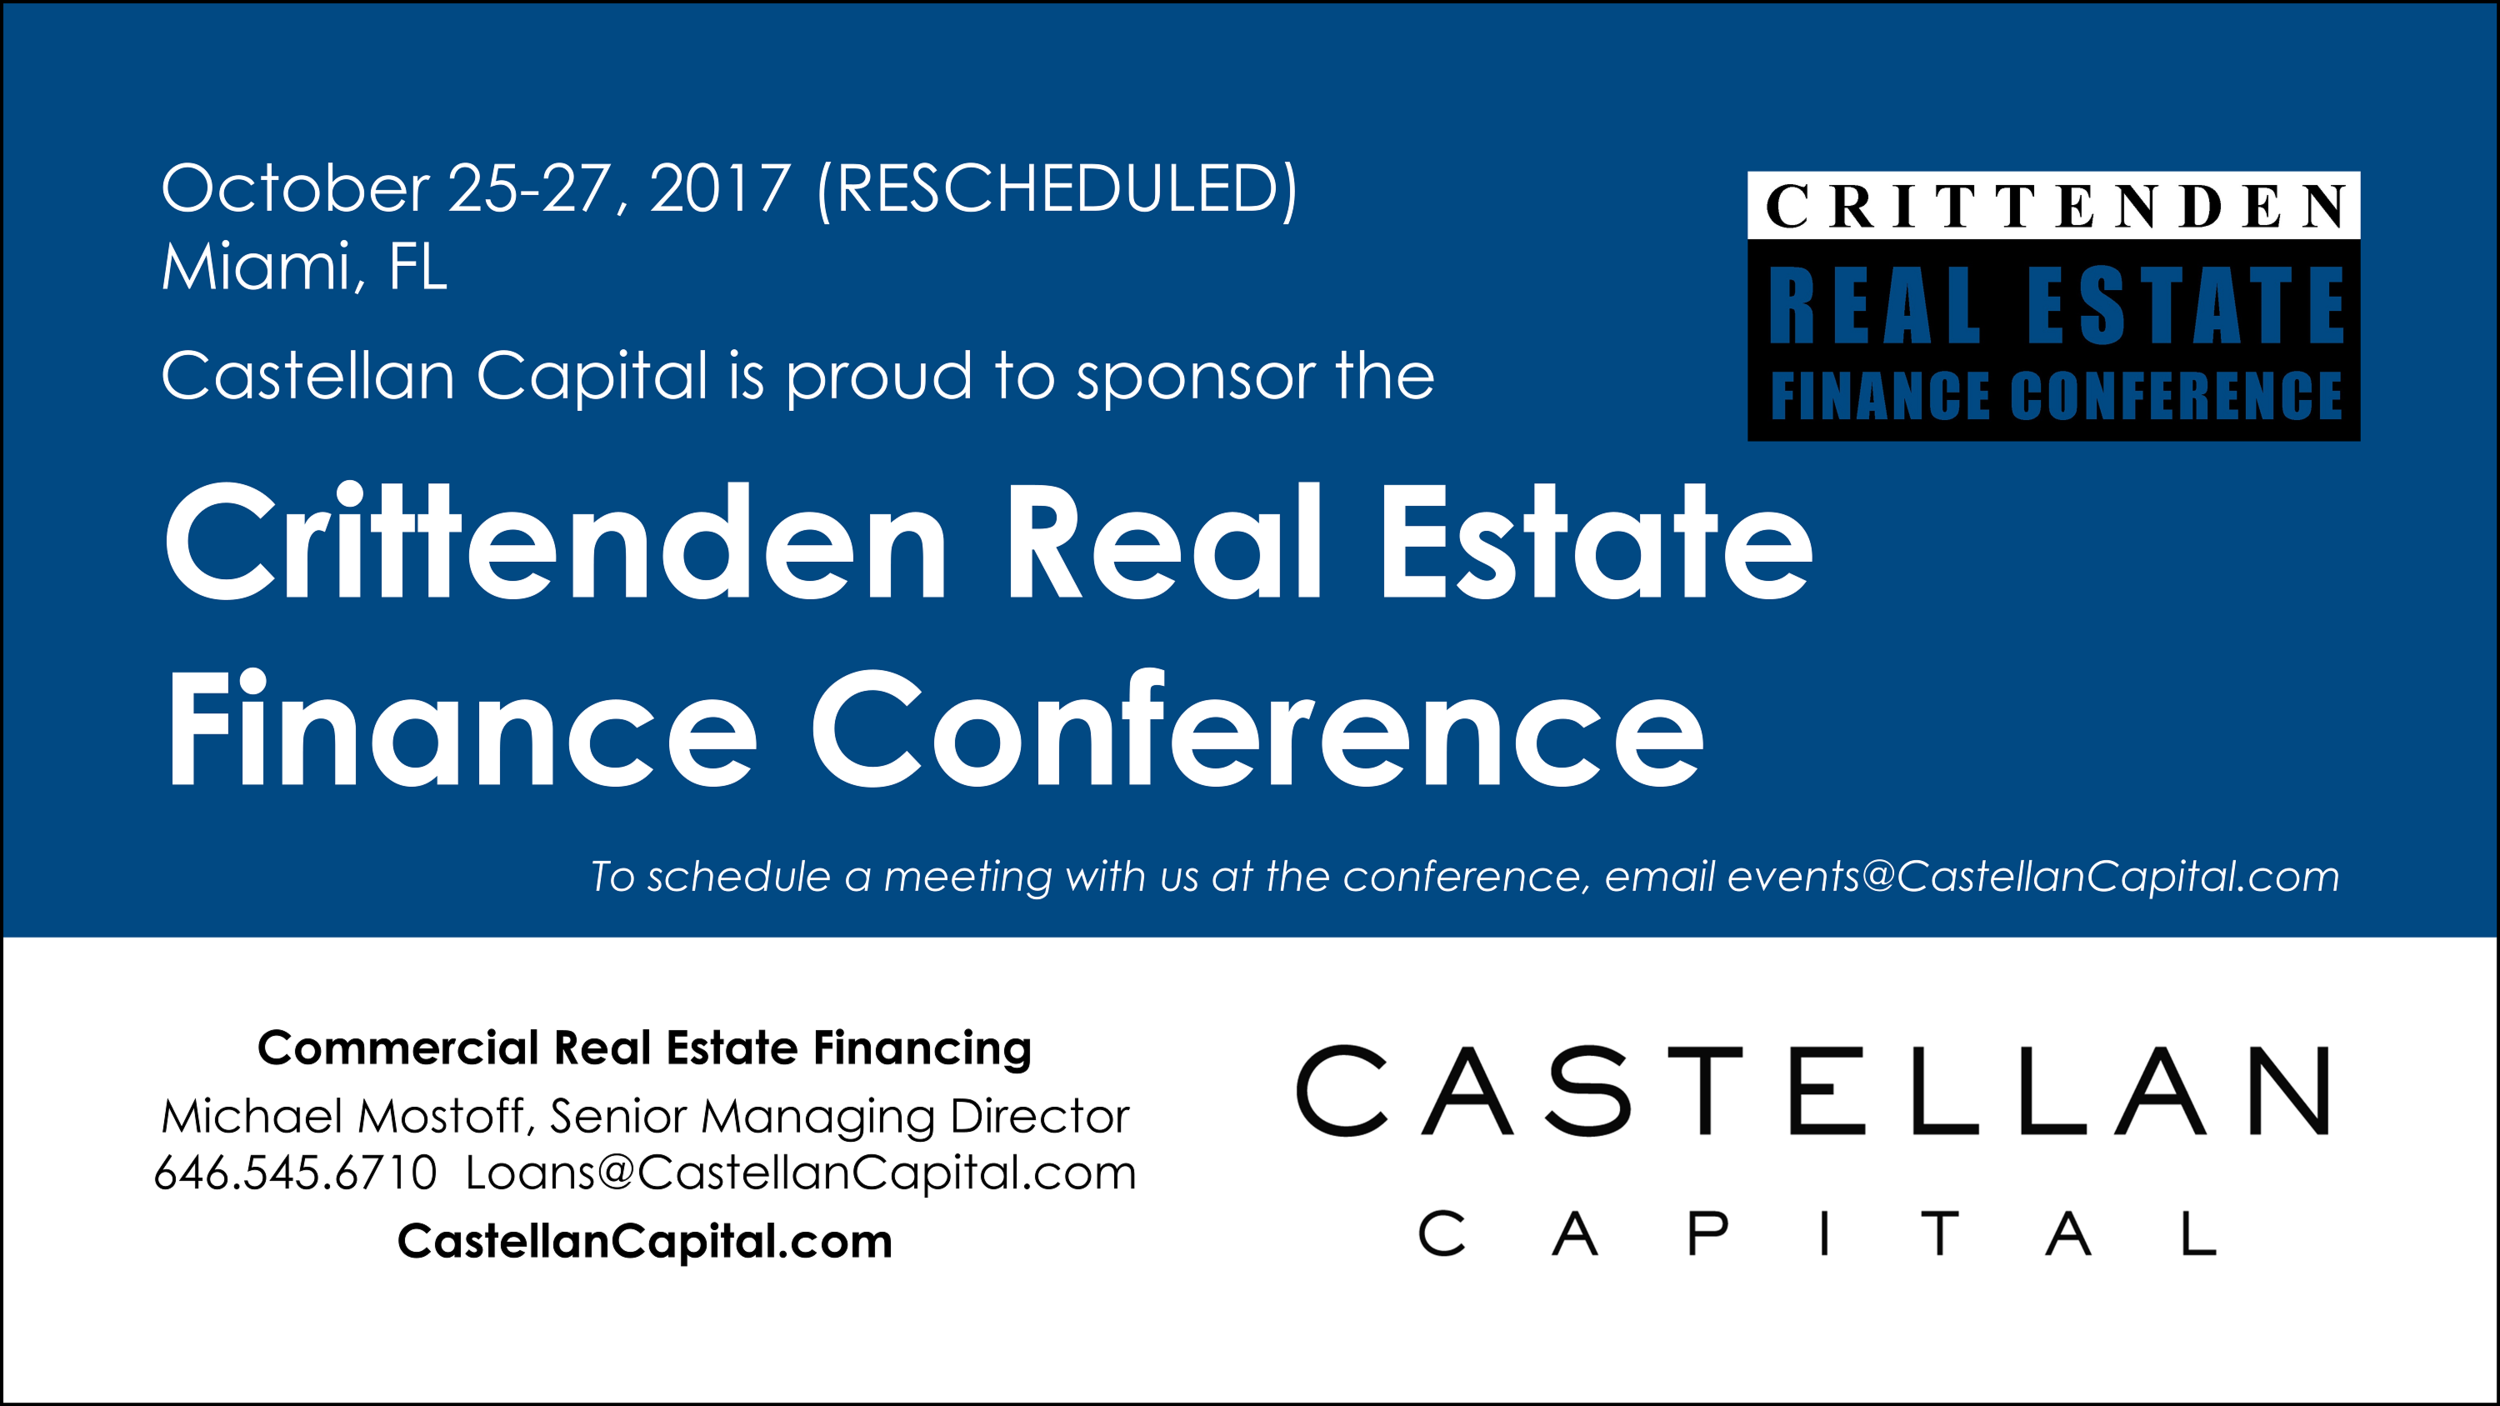 Crittenden Real Estate Finance Conference.png